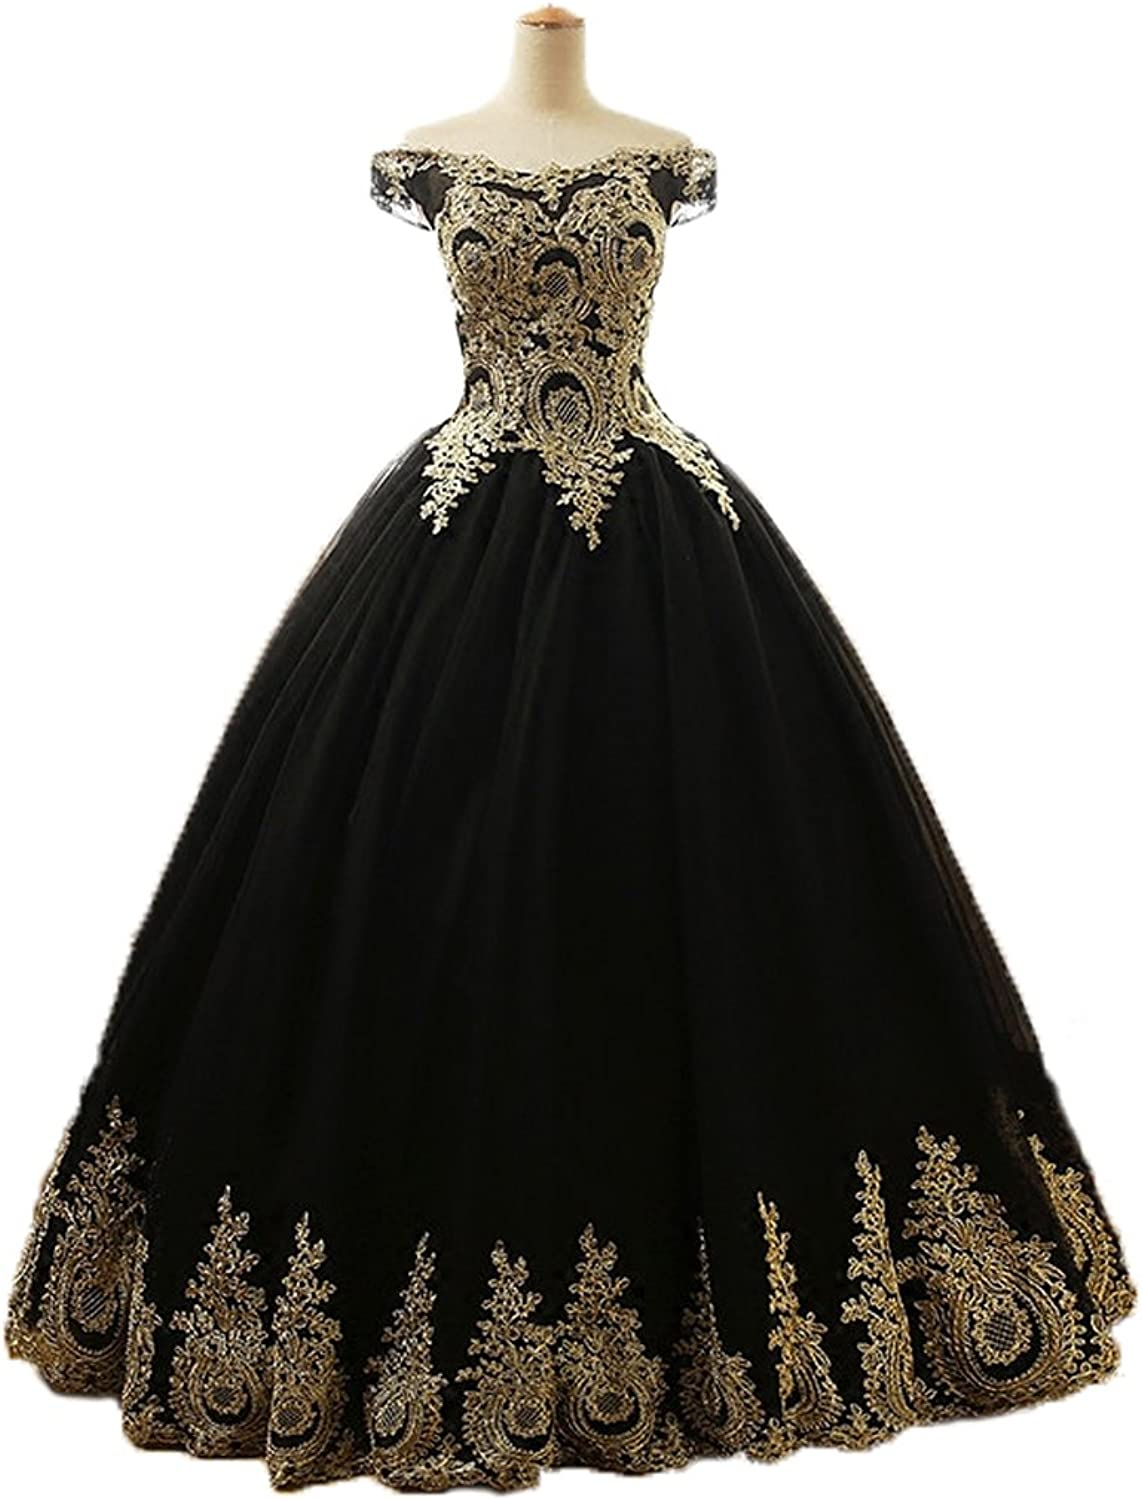 Graceprom gold Lace Appliques Quinceanera Dress Black Ball Gown Prom Dress